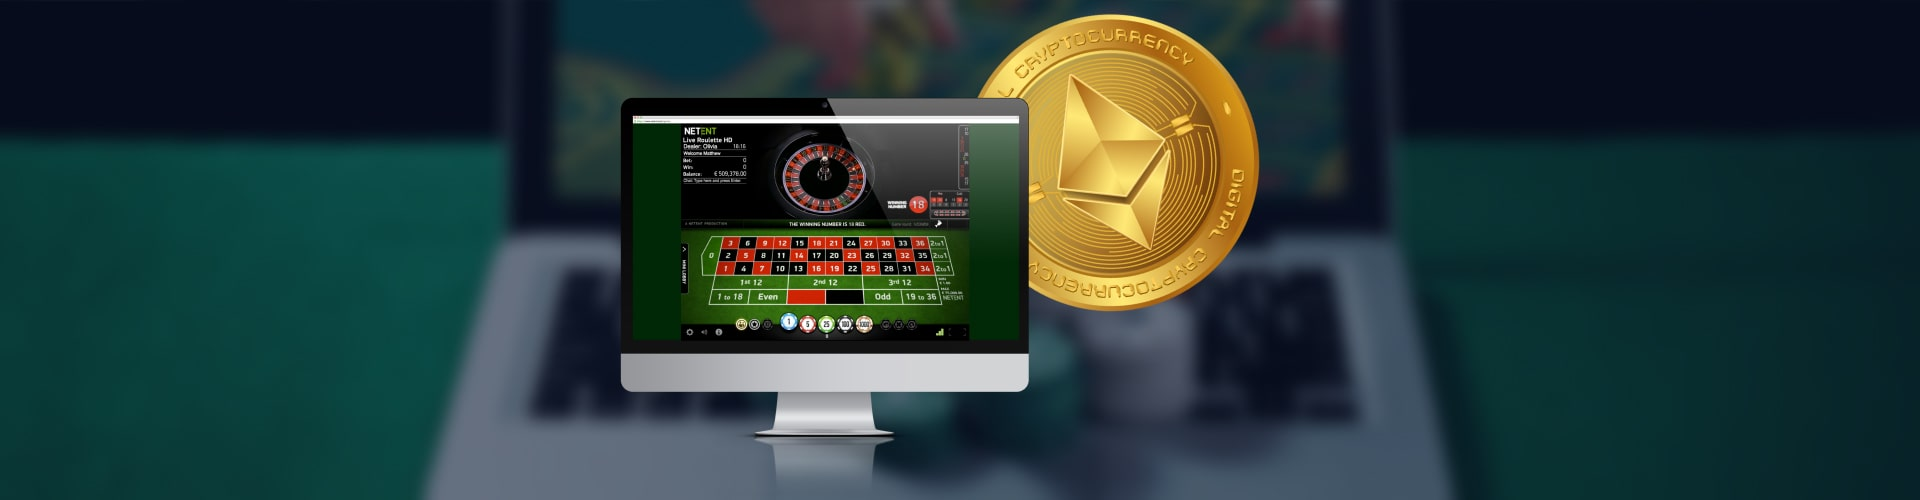 Ethereum Coin and Screen